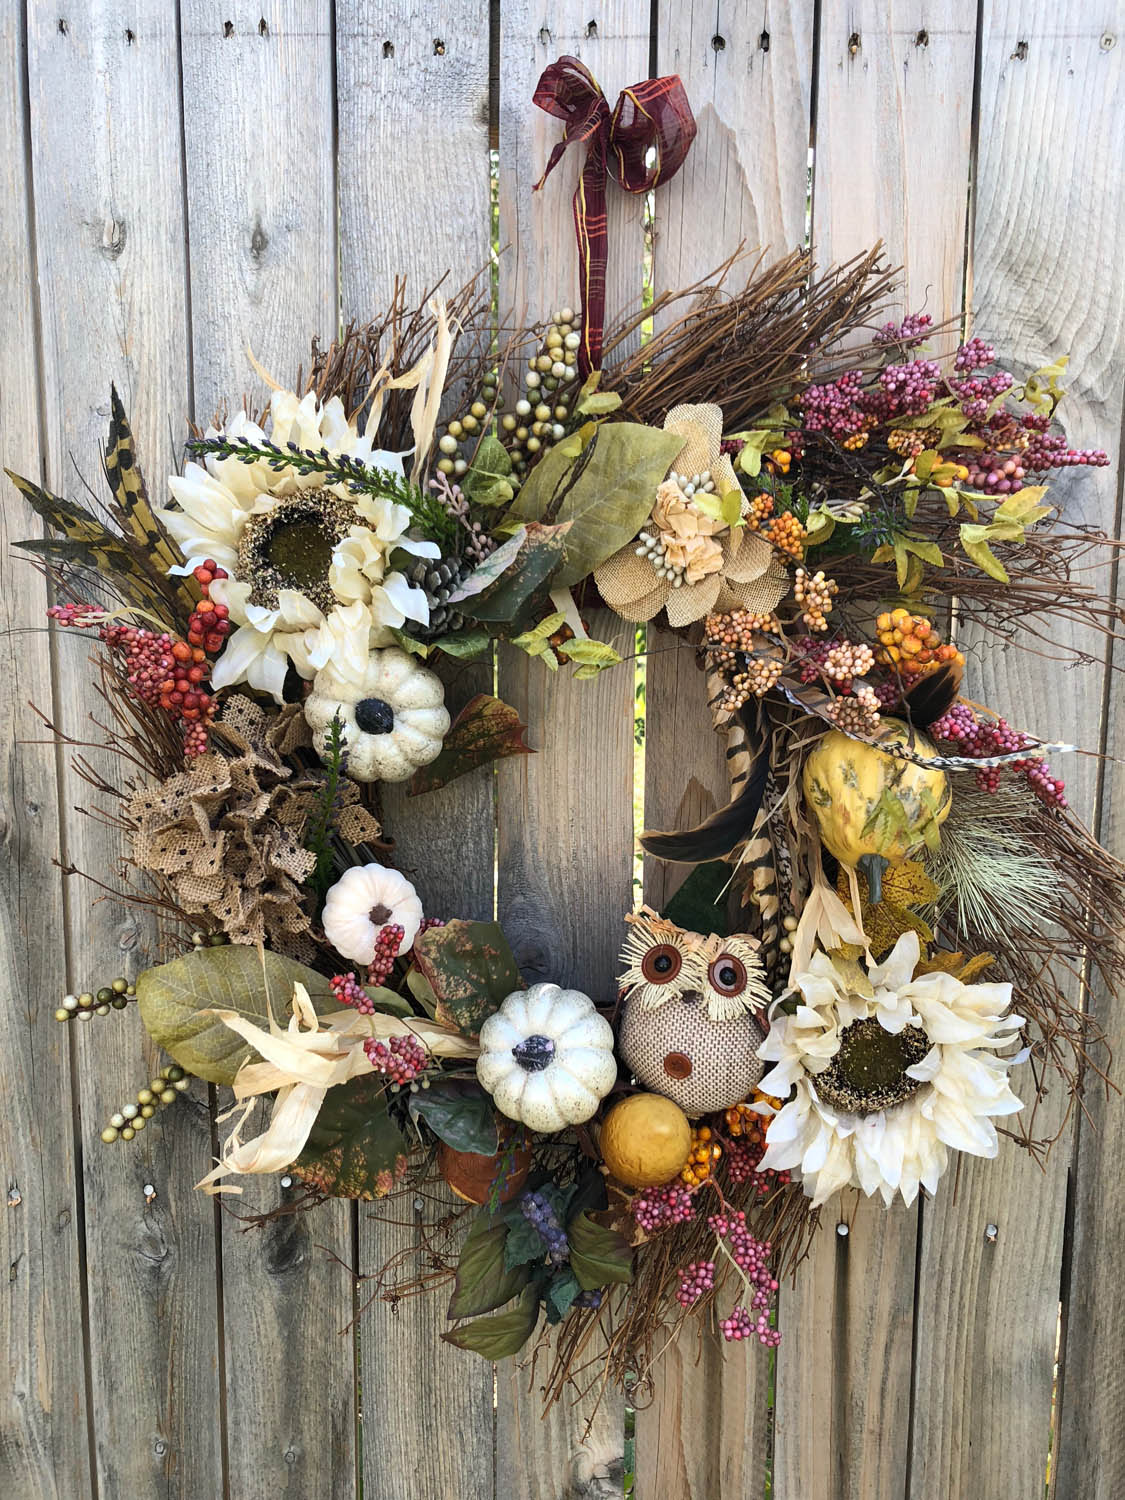 Finished hand made fall wreath hanging on a fence outside.